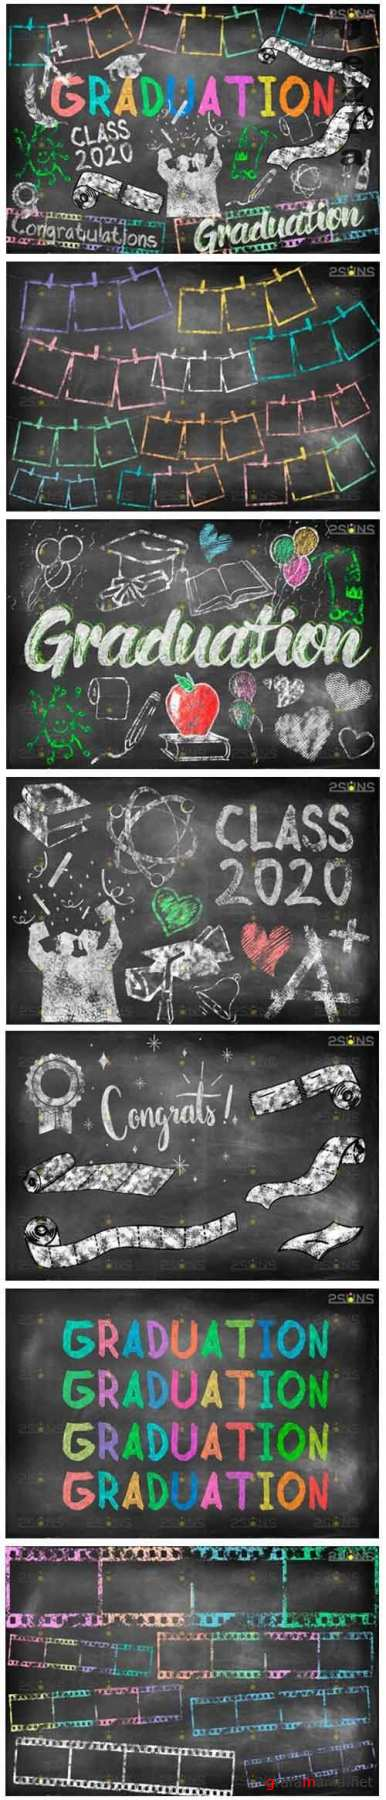 Overlay Graduation Sidewalk Chalk Art - 617277